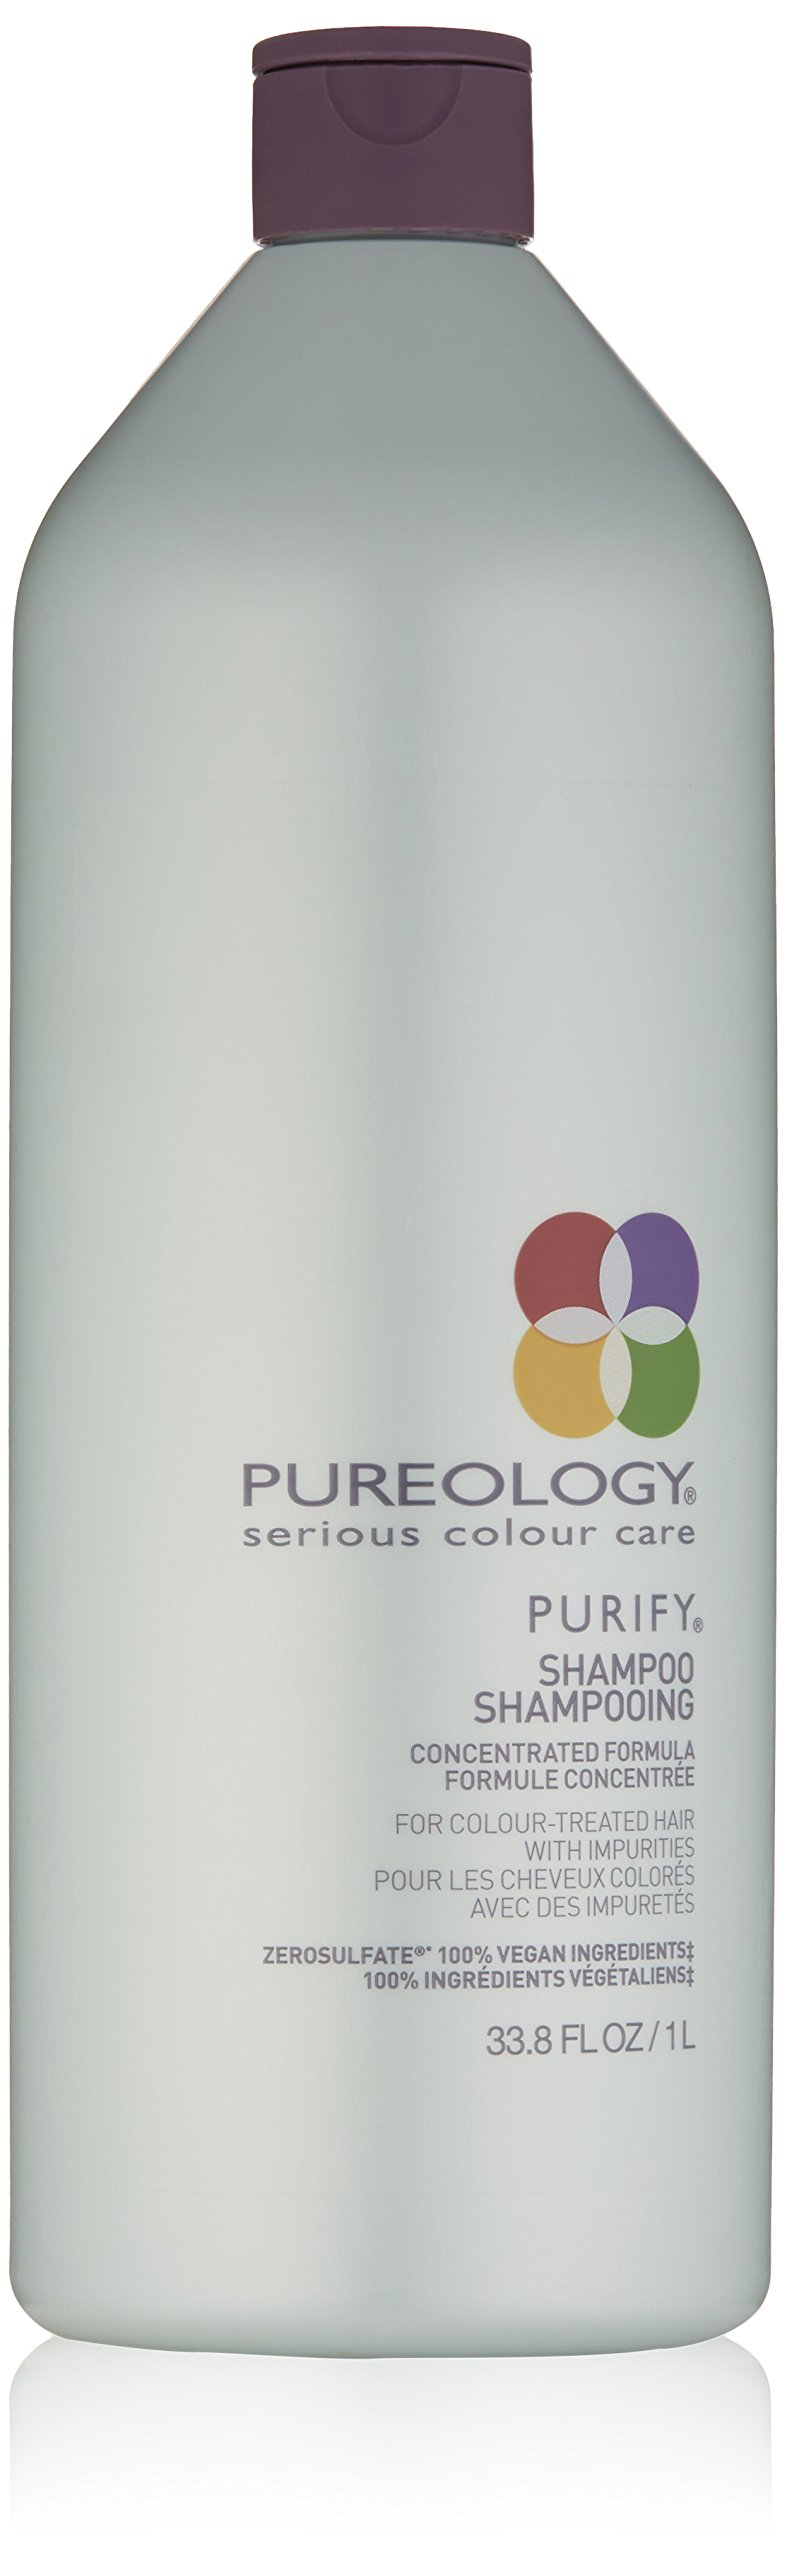 Pureology Purify Shampoo for Color Treated Hair, 33.8 Fl Oz by Pureology